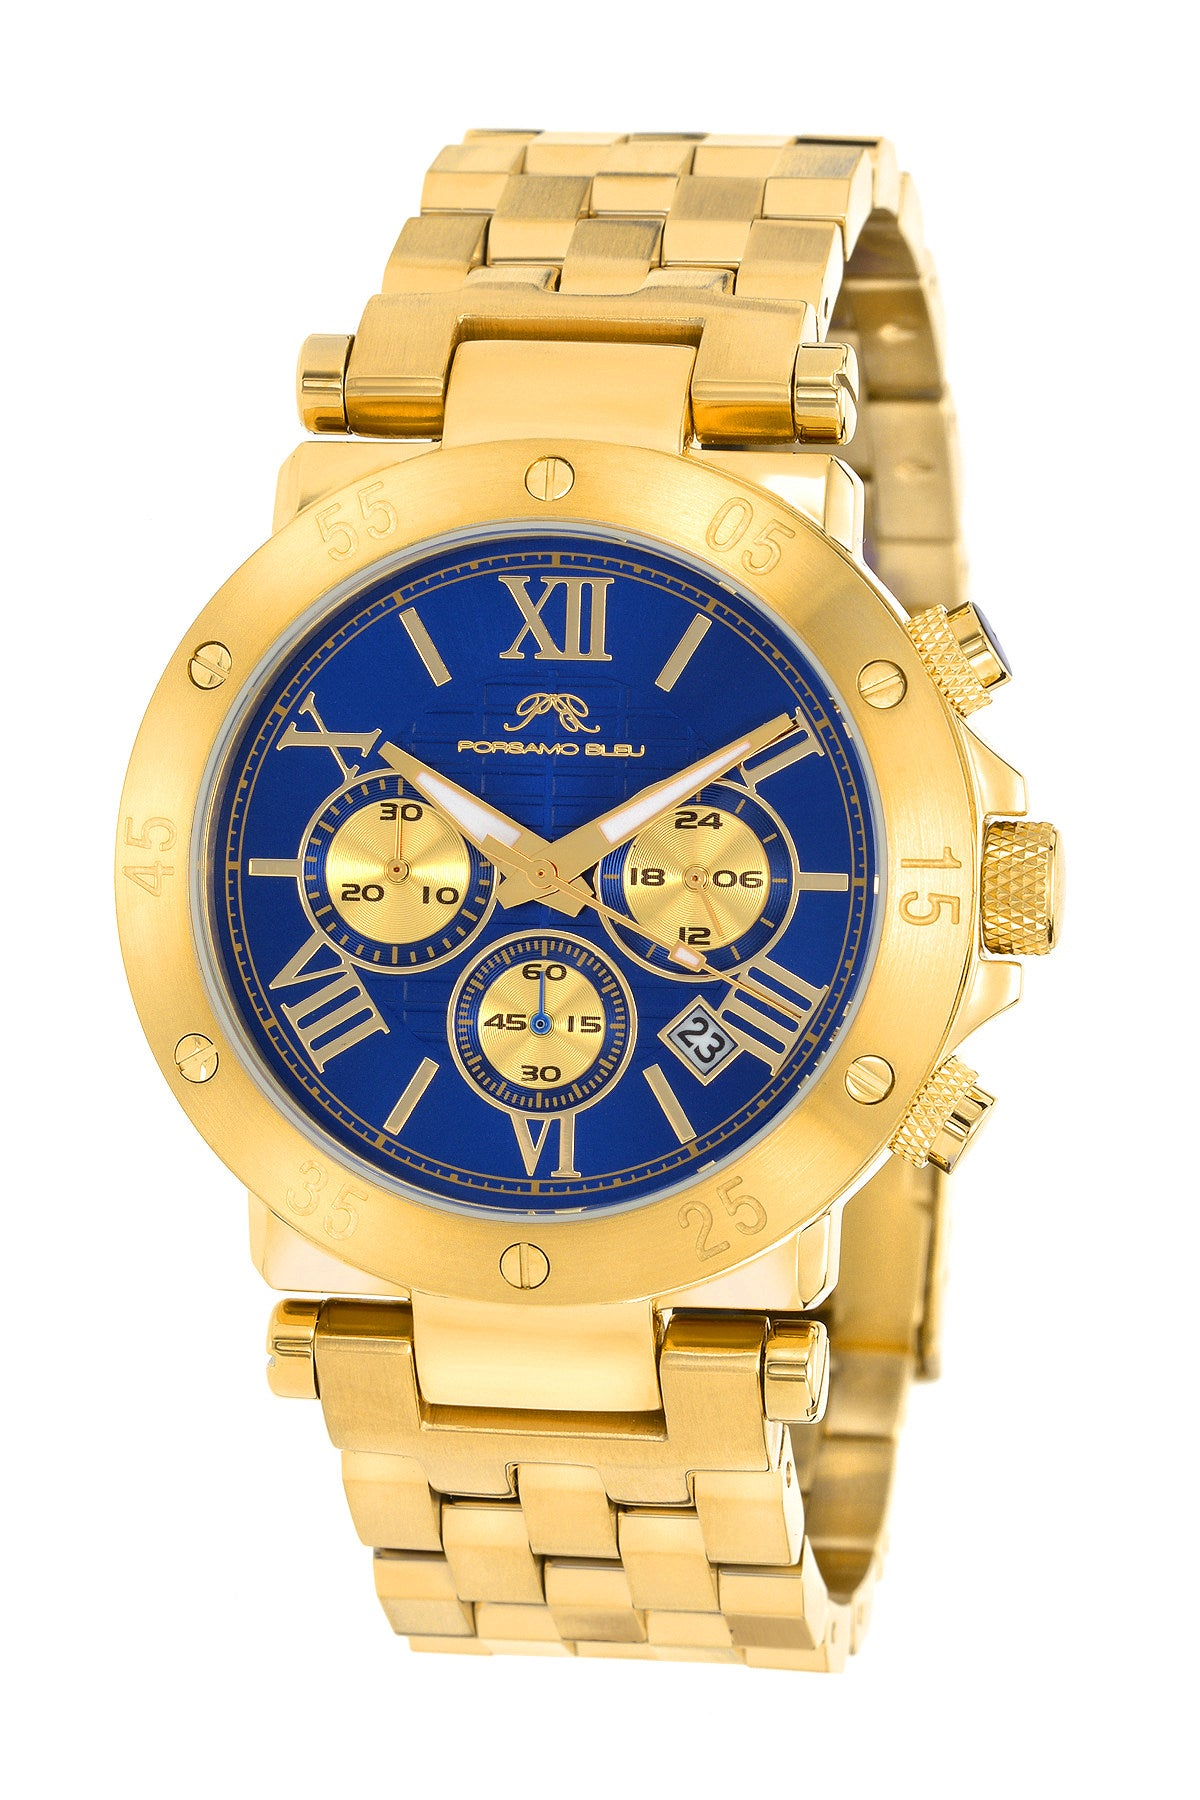 Porsamo Bleu Sasha luxury chronograph men's stainless steel watch, gold, blue 442BSAS